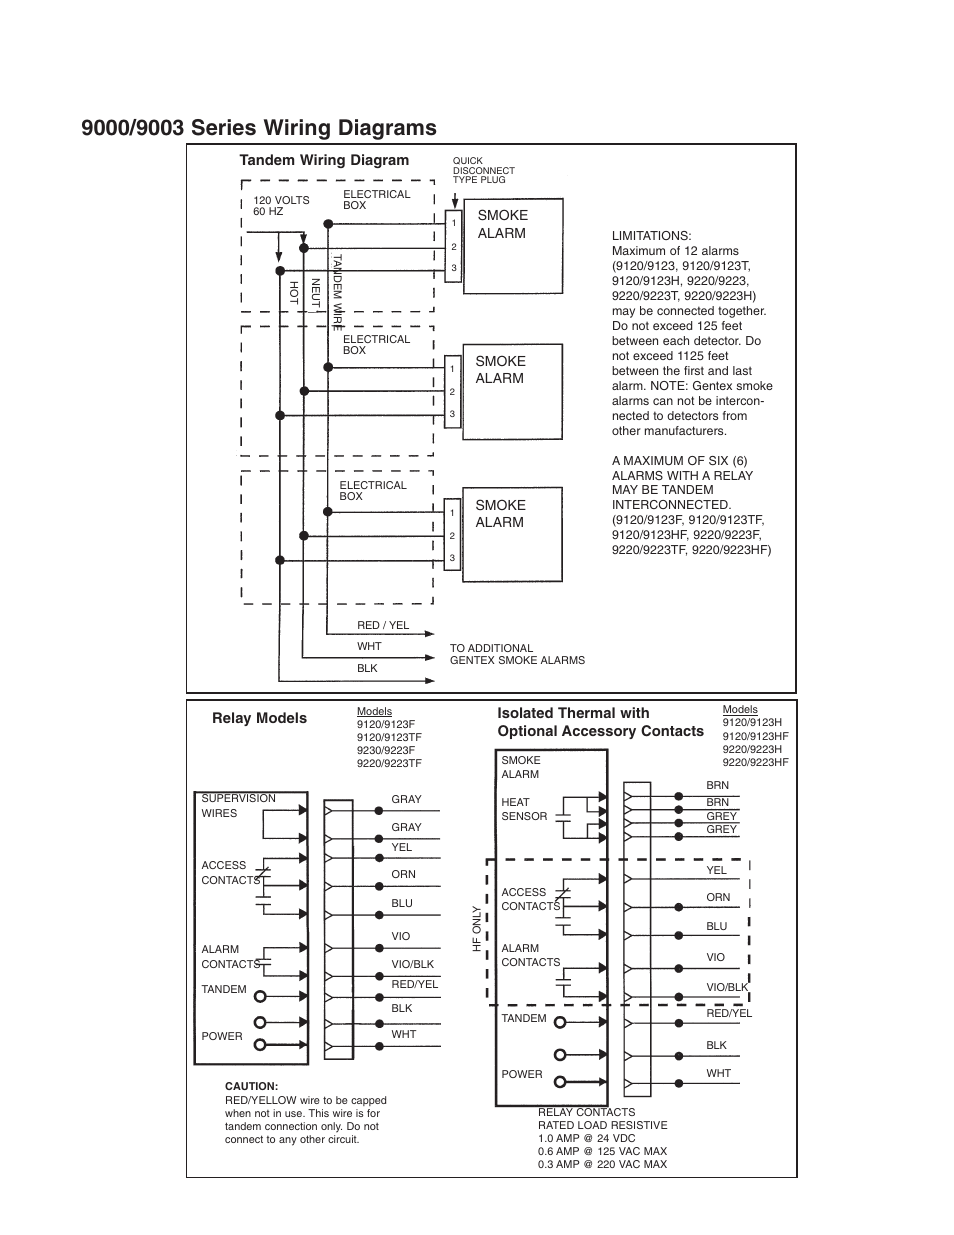 hight resolution of smoke alarm tandem wiring diagram relay models isolated thermal with optional accessory contacts